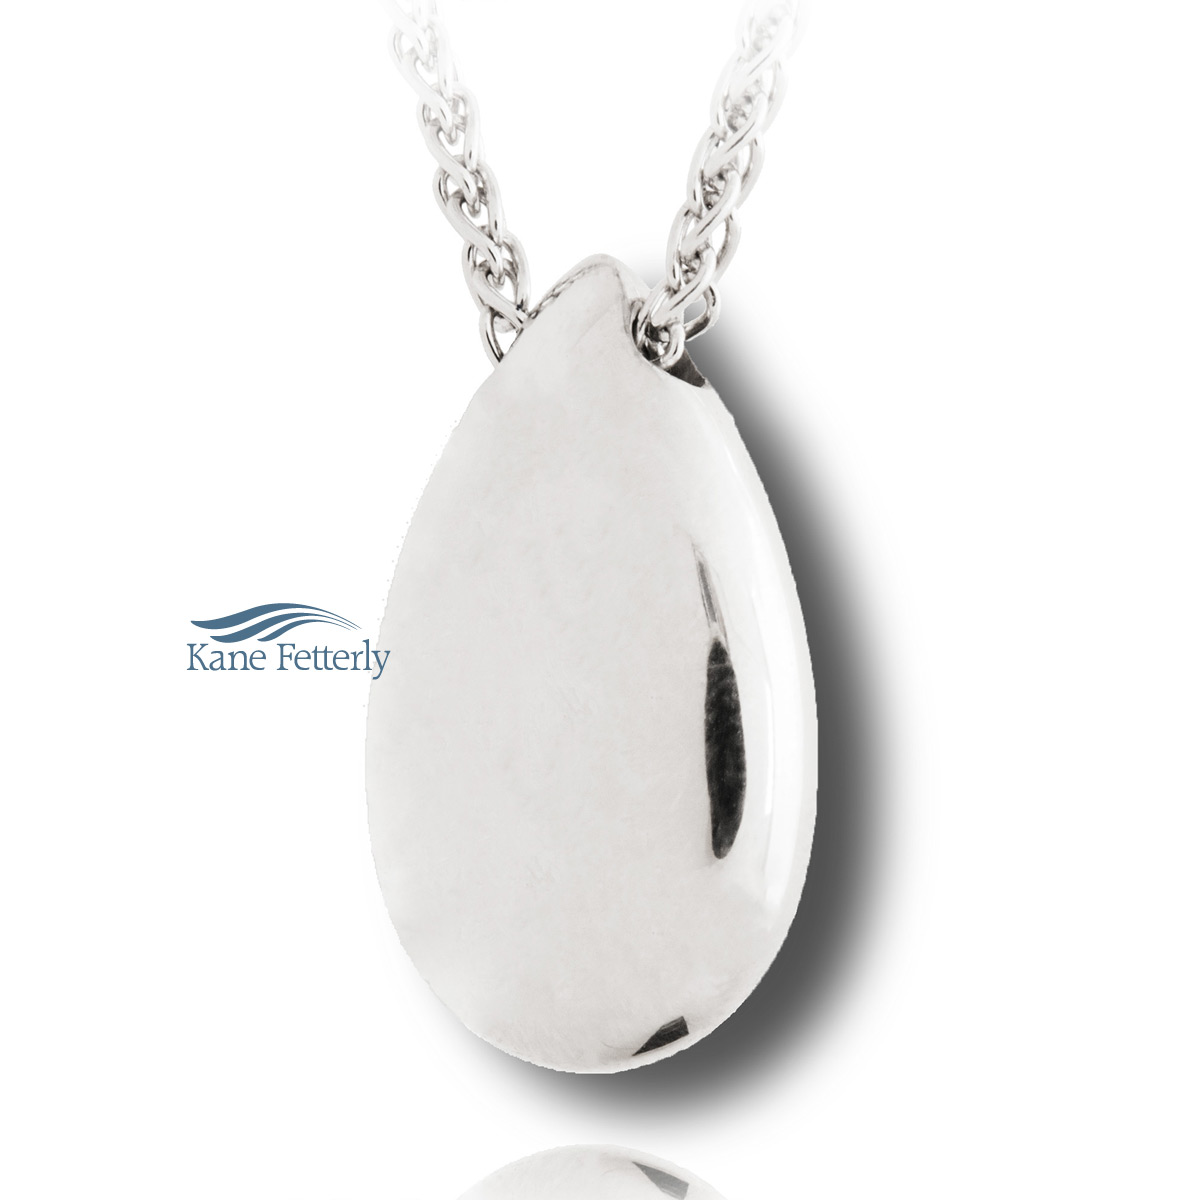 J0124 Teardrop pendant in sterling silver